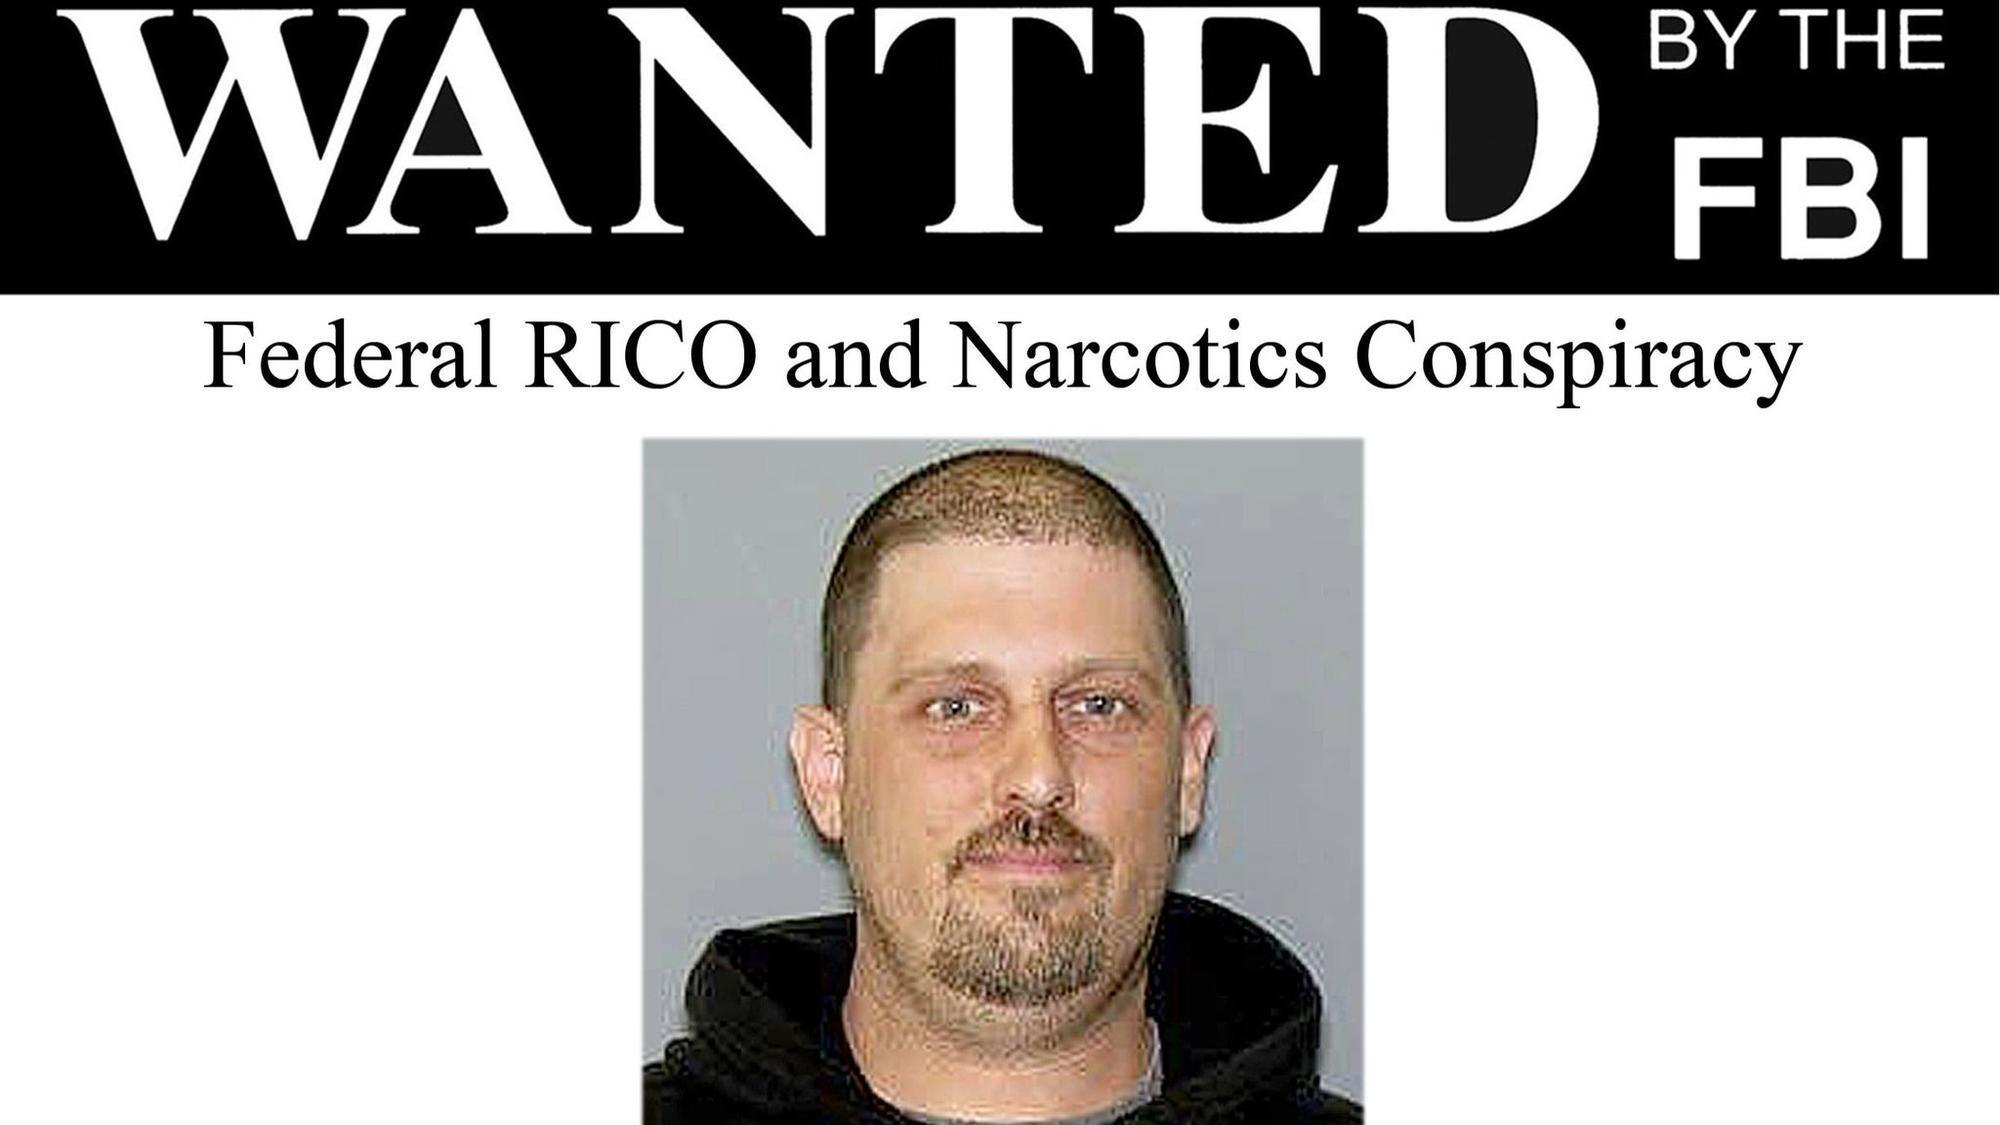 FBI says fugitive wanted in Hell's Angels investigation could be in Joliet area